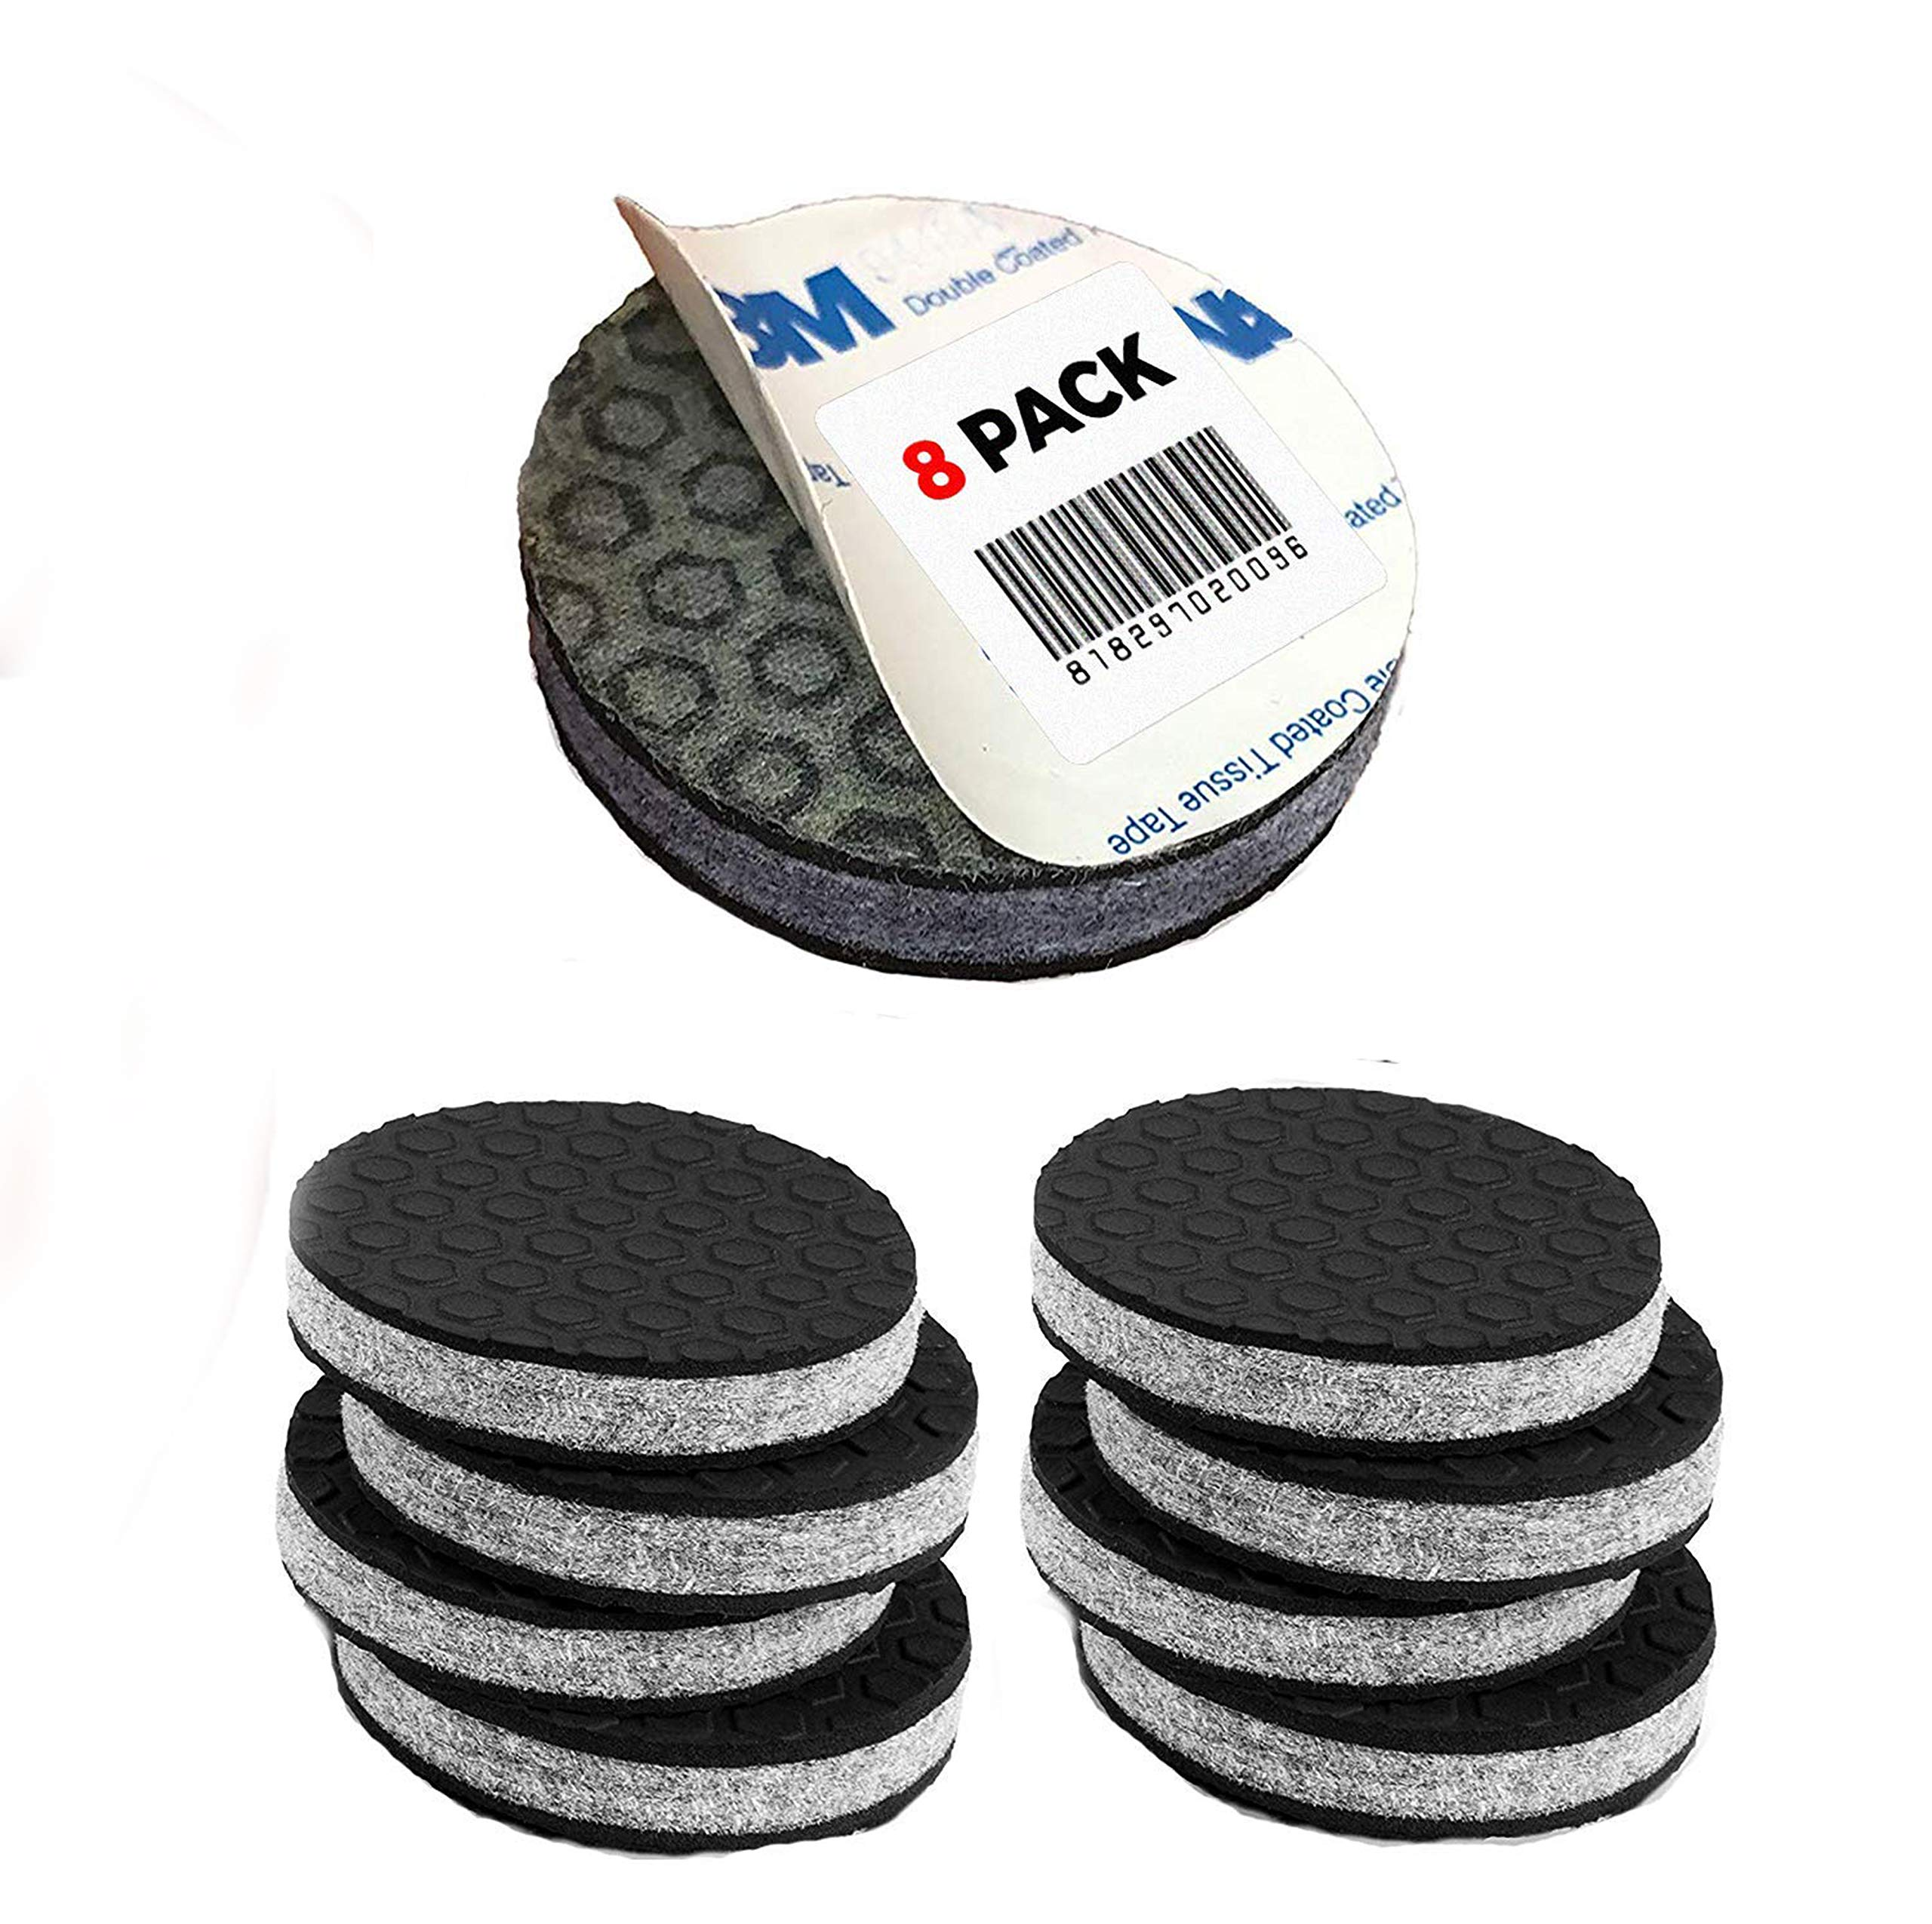 ''SlipToGrip'' Non Slip Furniture Pad Grippers - (8 Pack) Extra Large 3'' Round with Adhesive Side - Furniture Non-Slip Pads with 3/8'' Heavy Duty Felt Core. No Nails. Patent Pending.